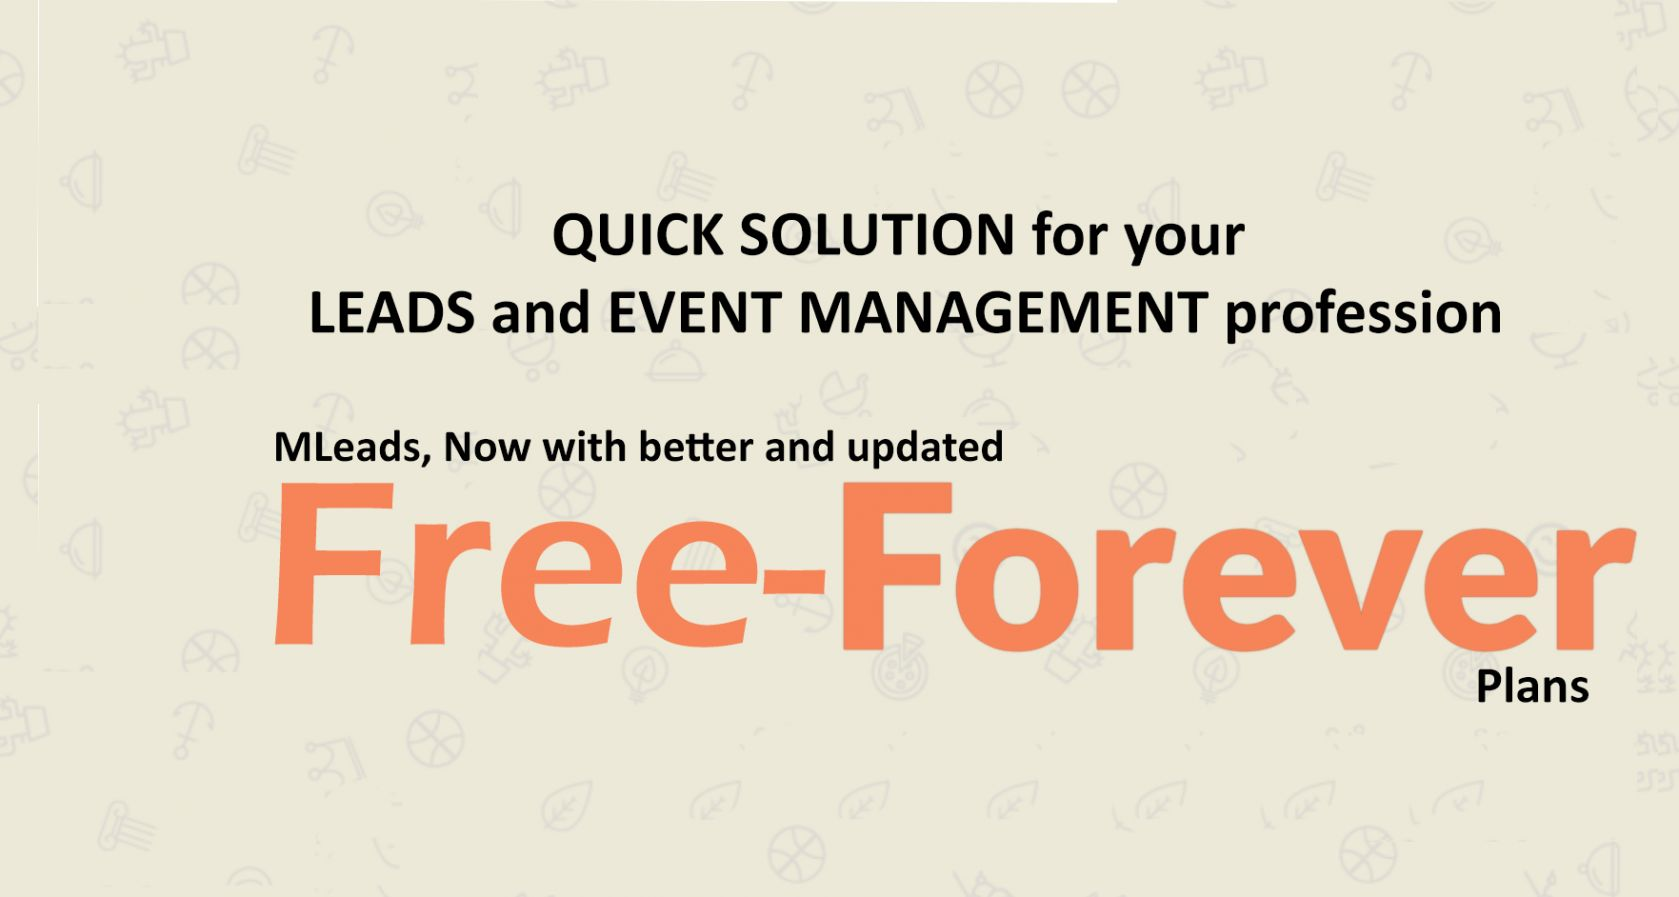 QUICK SOLUTION for your LEADS & EVENT MANAGEMENT P